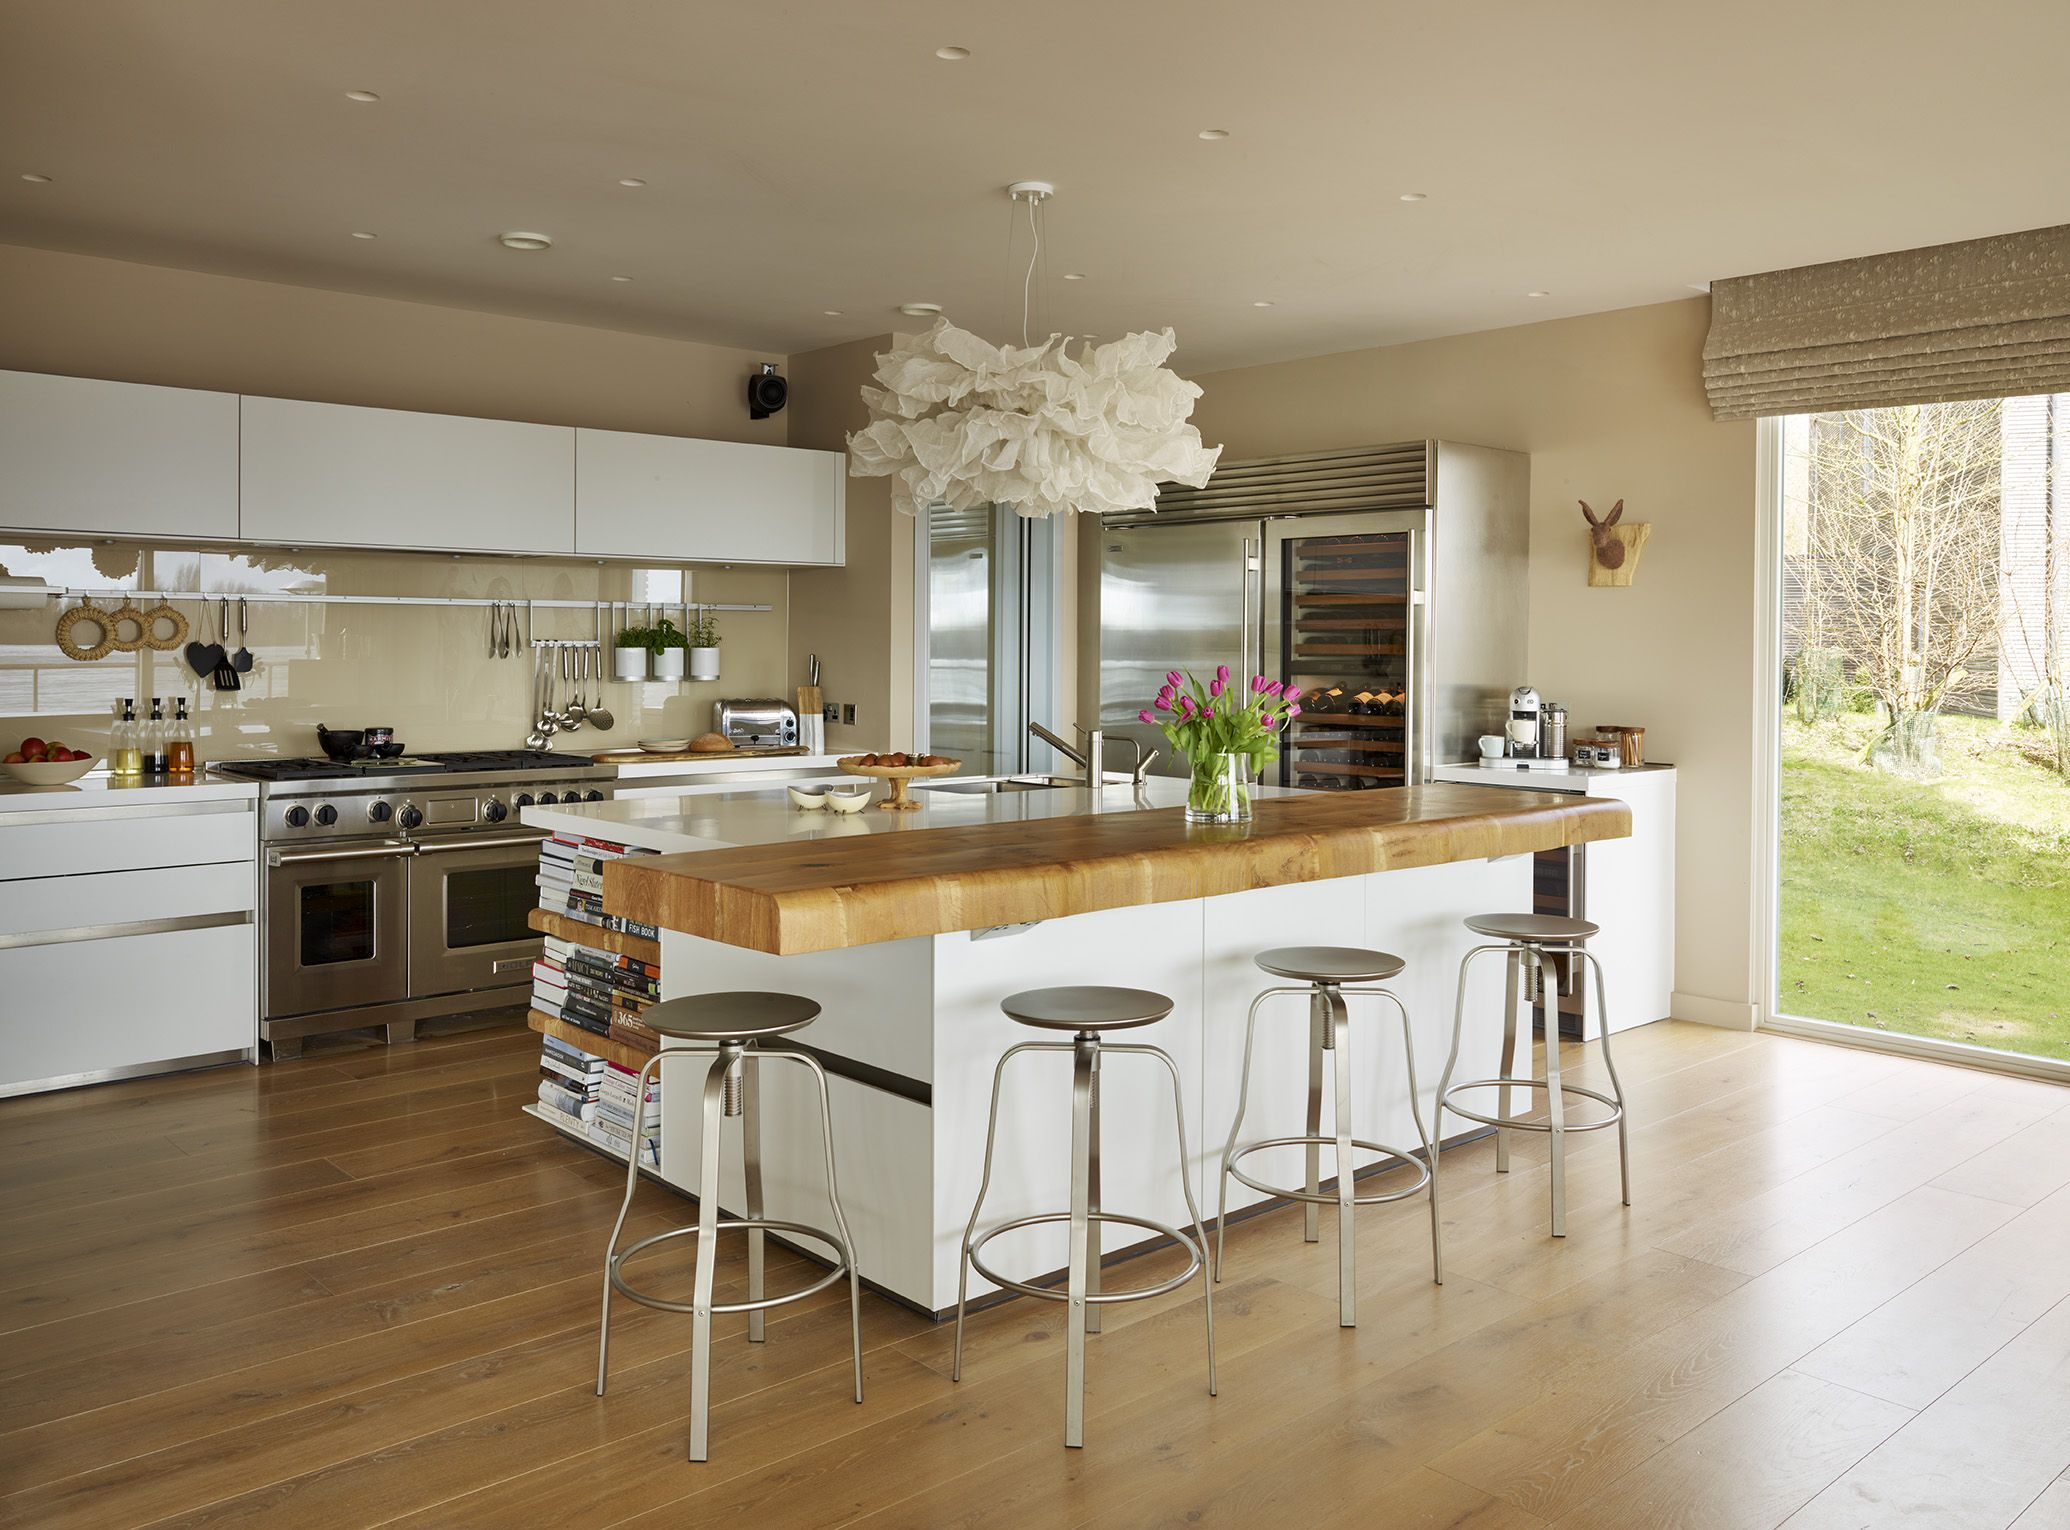 Bulthaup B3 Kitchen With Central Island With Bar Top And Stools For Social Dining  And Cooking. #kitchens #cooking #social